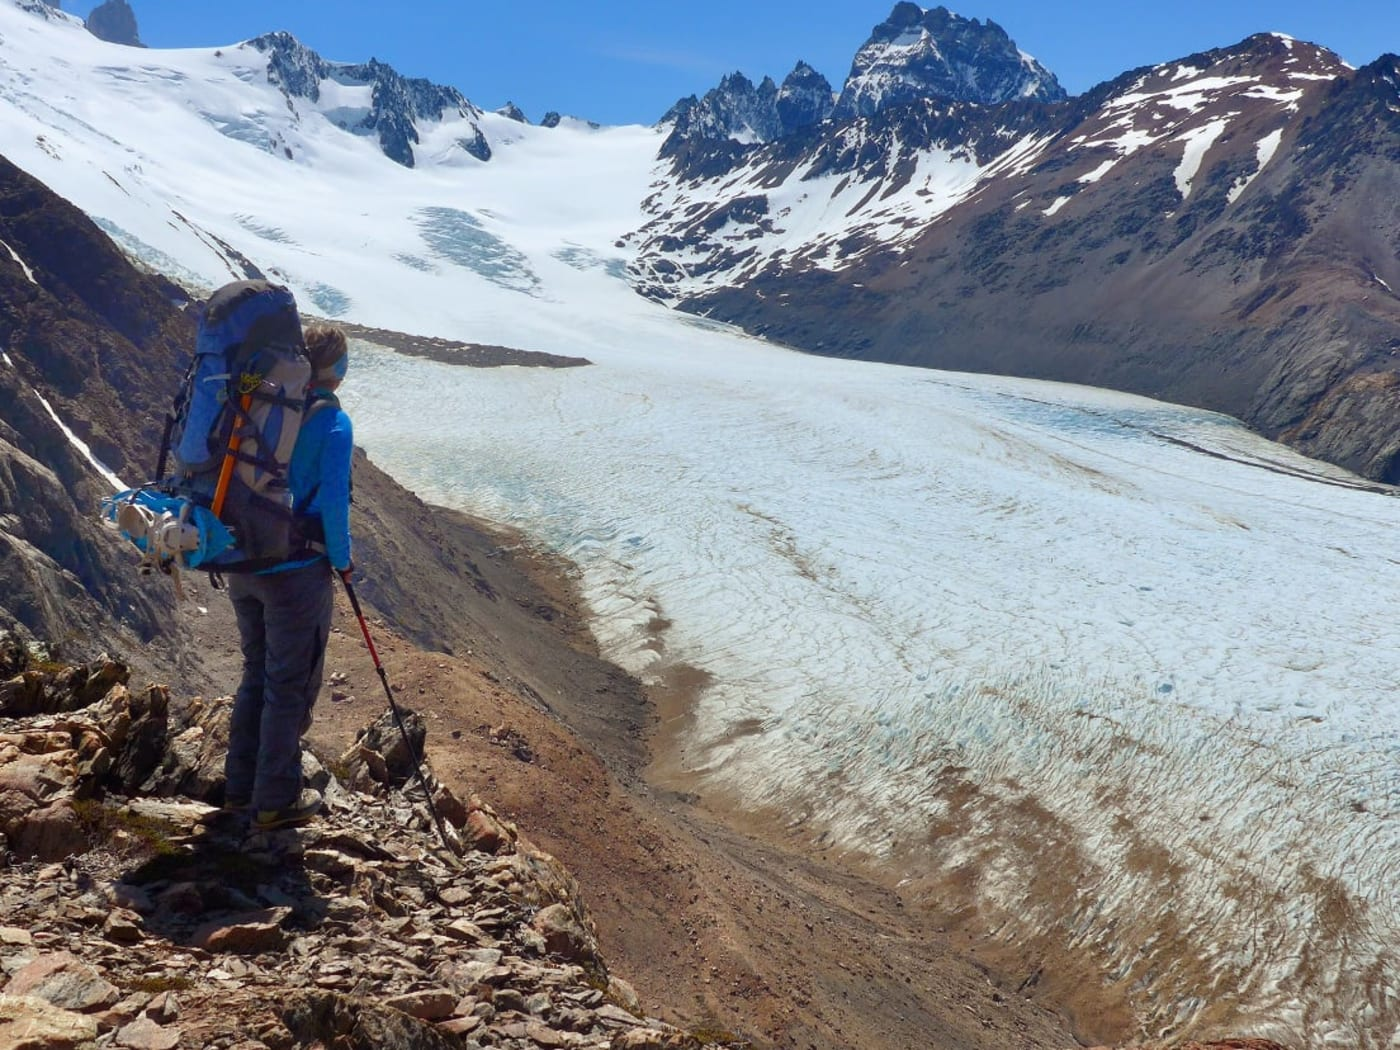 Looking down on the Glacier Tunel from path to Paso del Viento